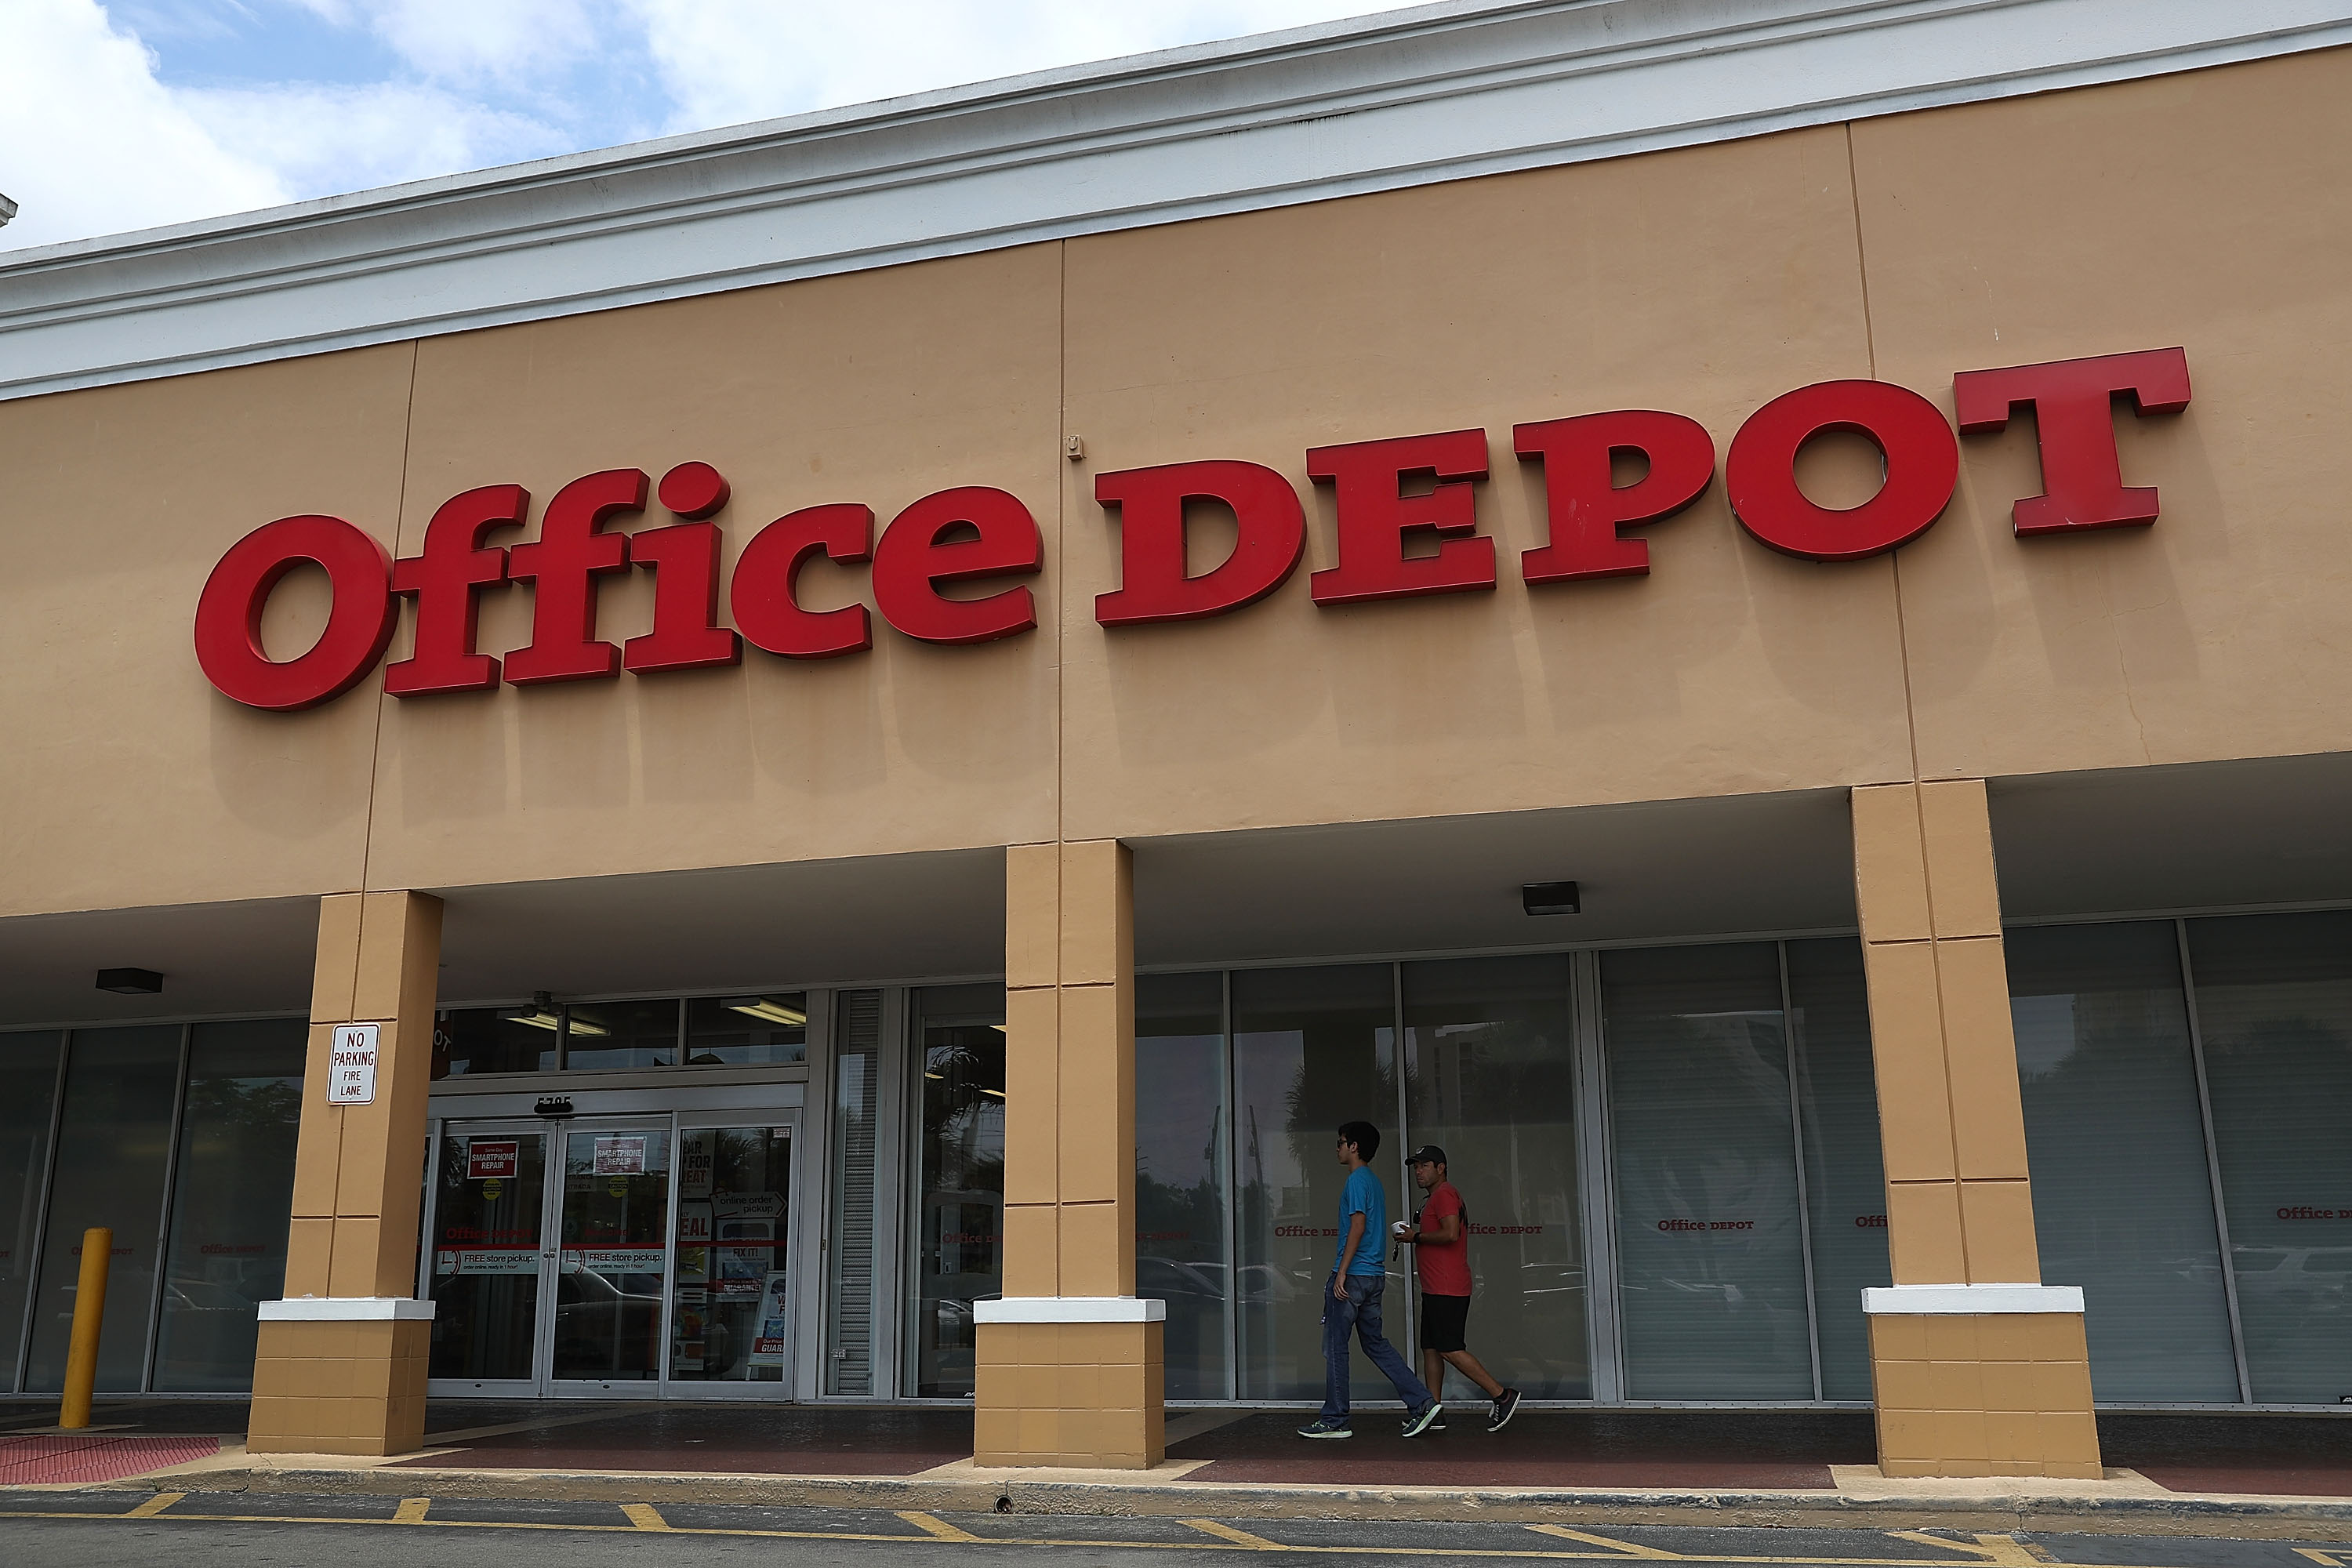 An Office Depot store is seen on May 11, 2016 in Miami, Florida. A federal judge blocked the proposed merger of Staples Inc. and Office Depot Inc. because of antitrust concerns.